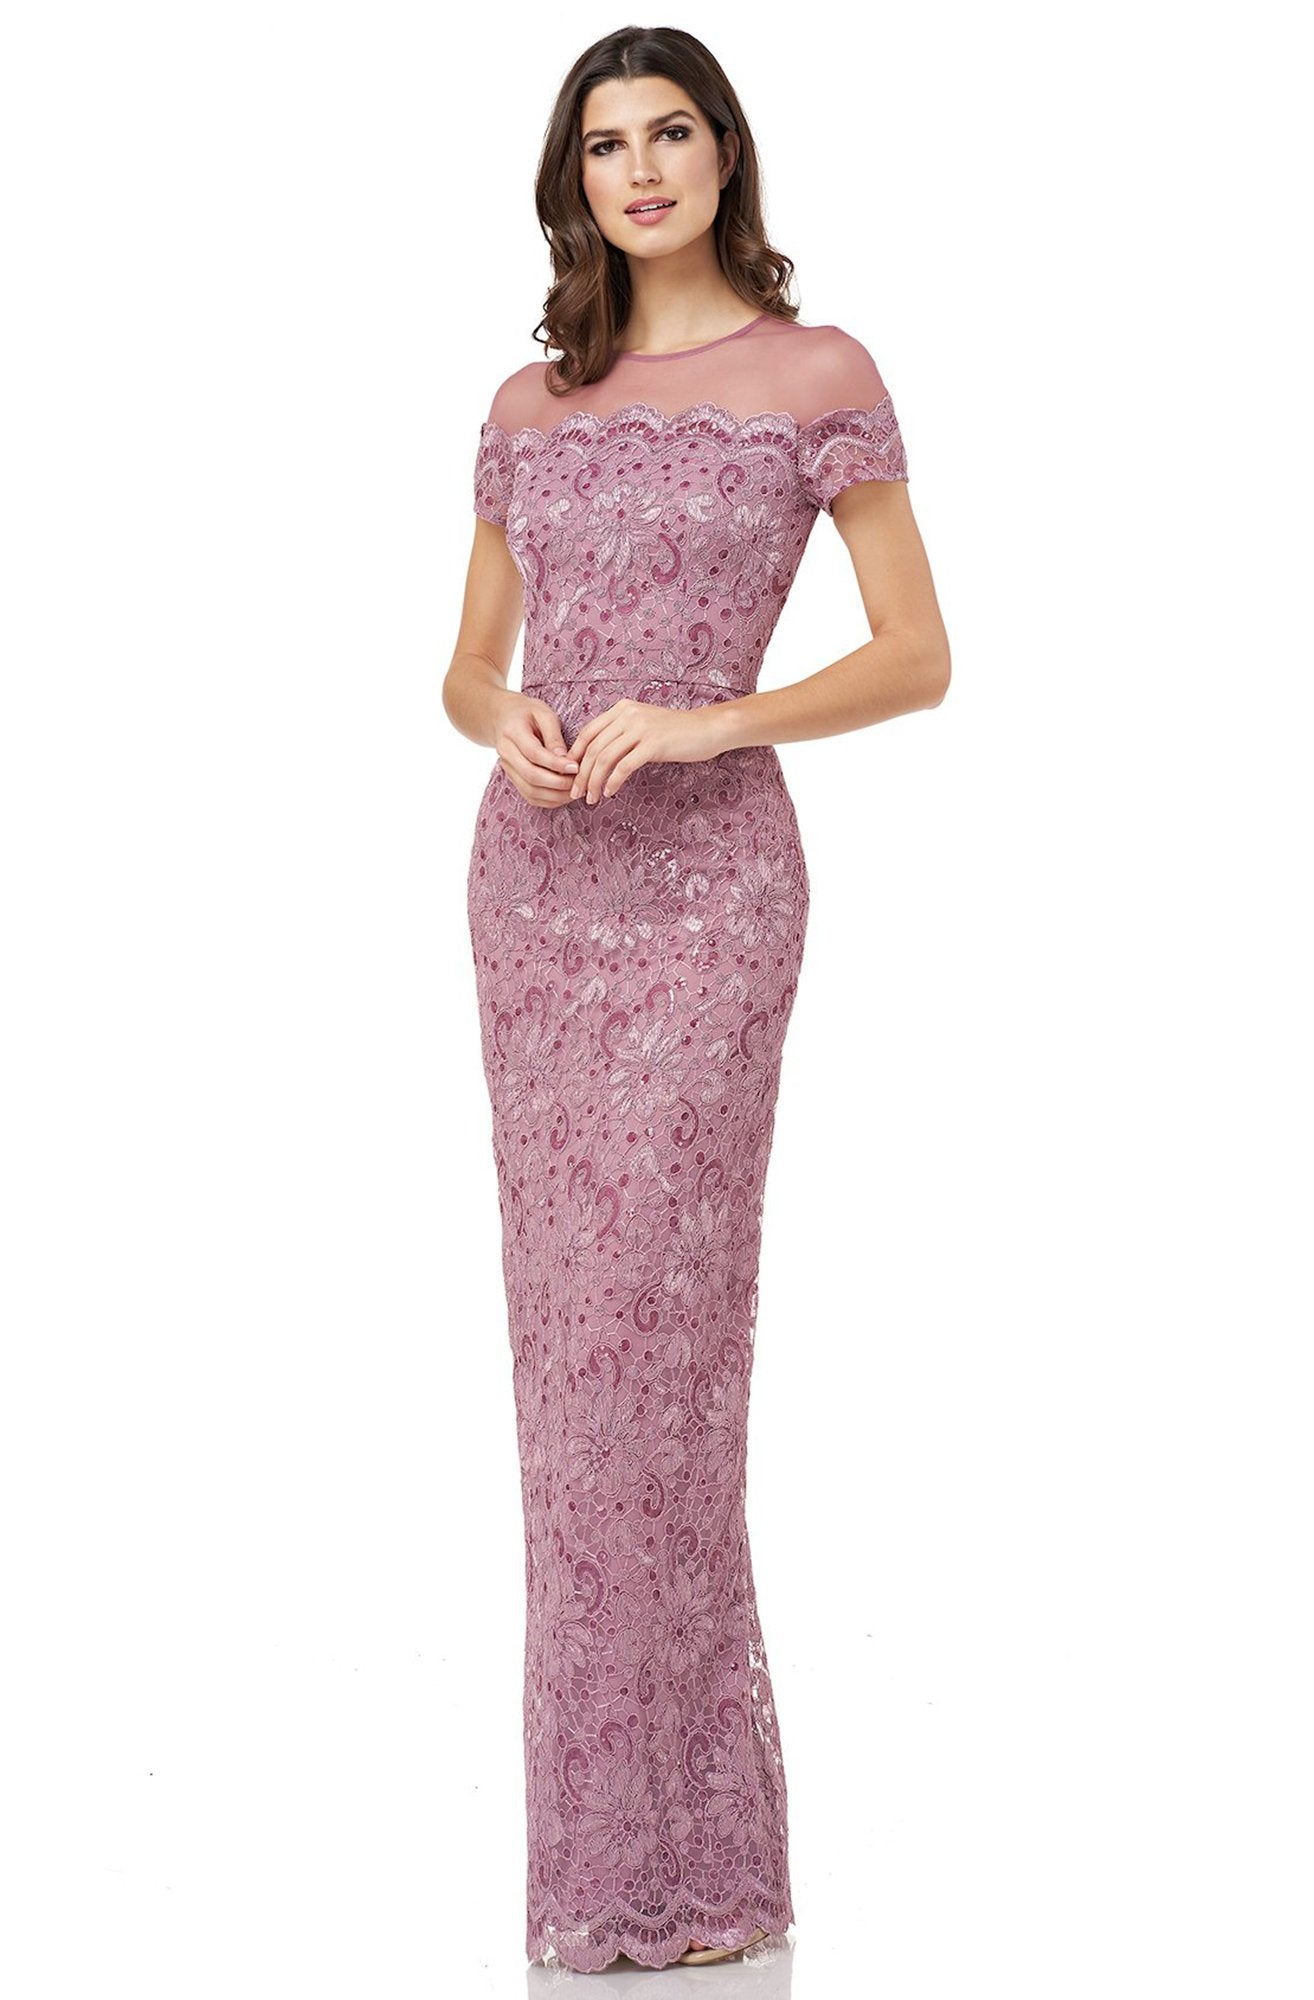 JS Collections - 866648 Illusion Floral Lace Embroidered Mesh Dress In Pink